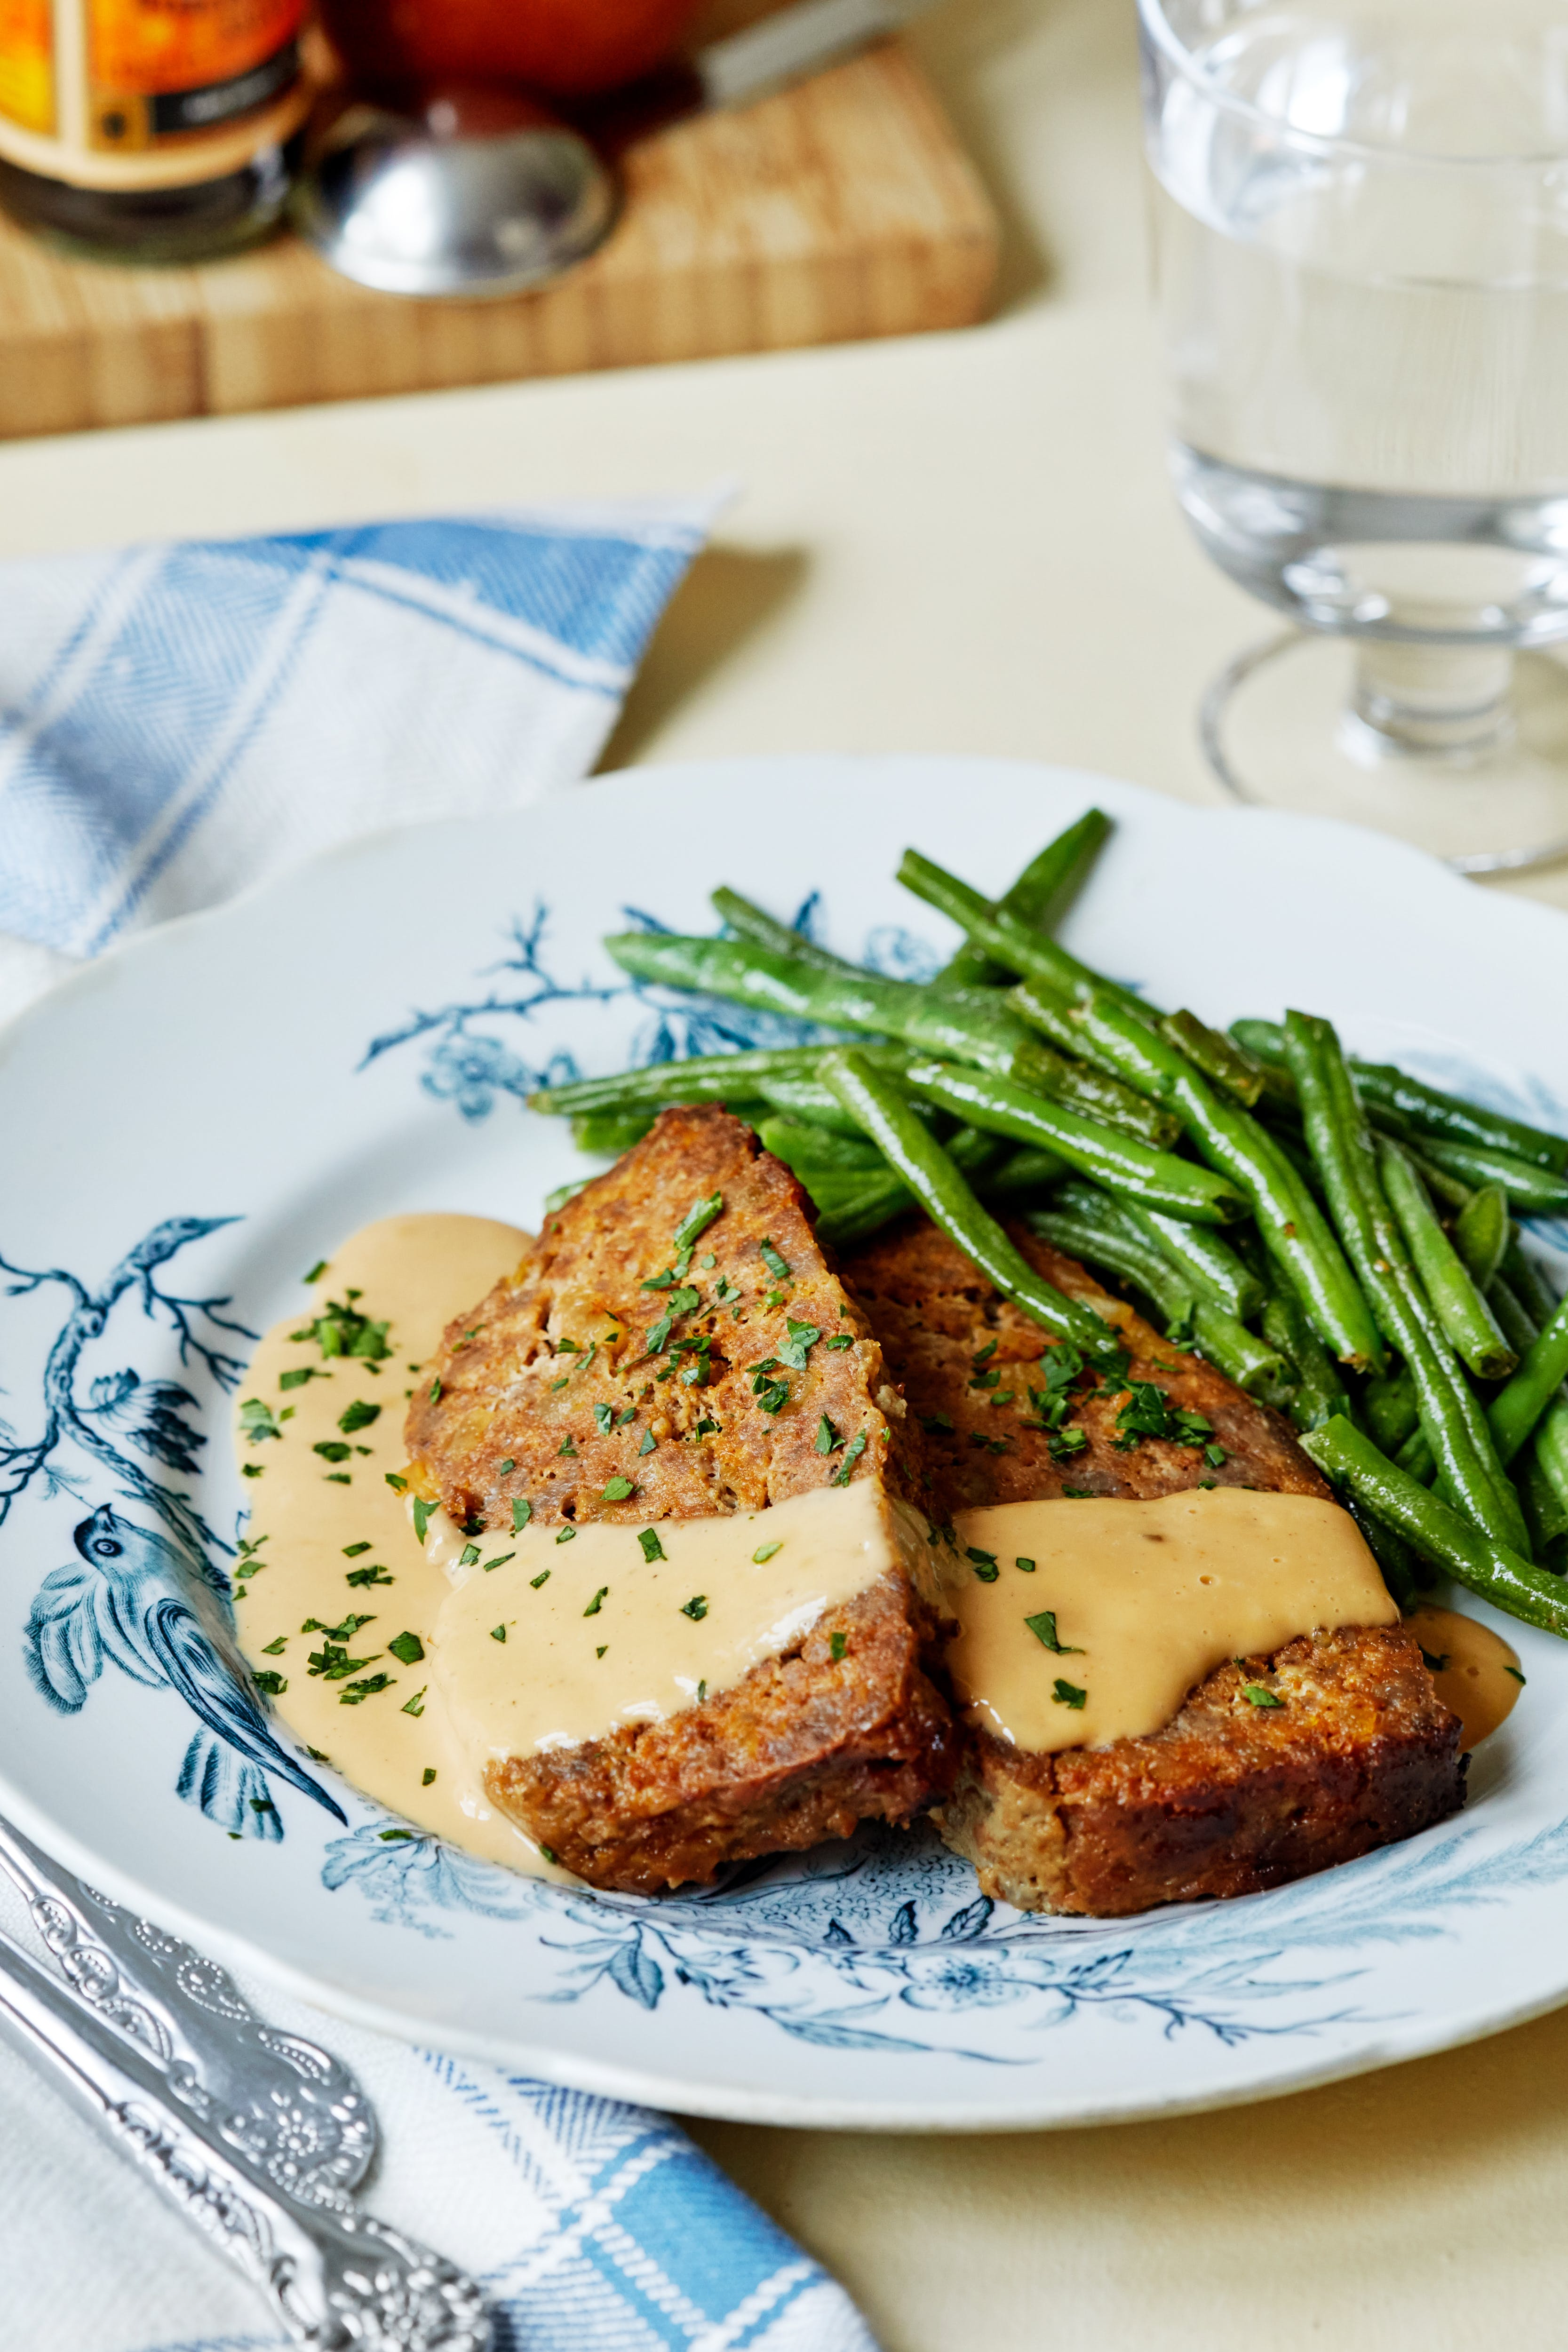 Meatloaf with gravy and beans